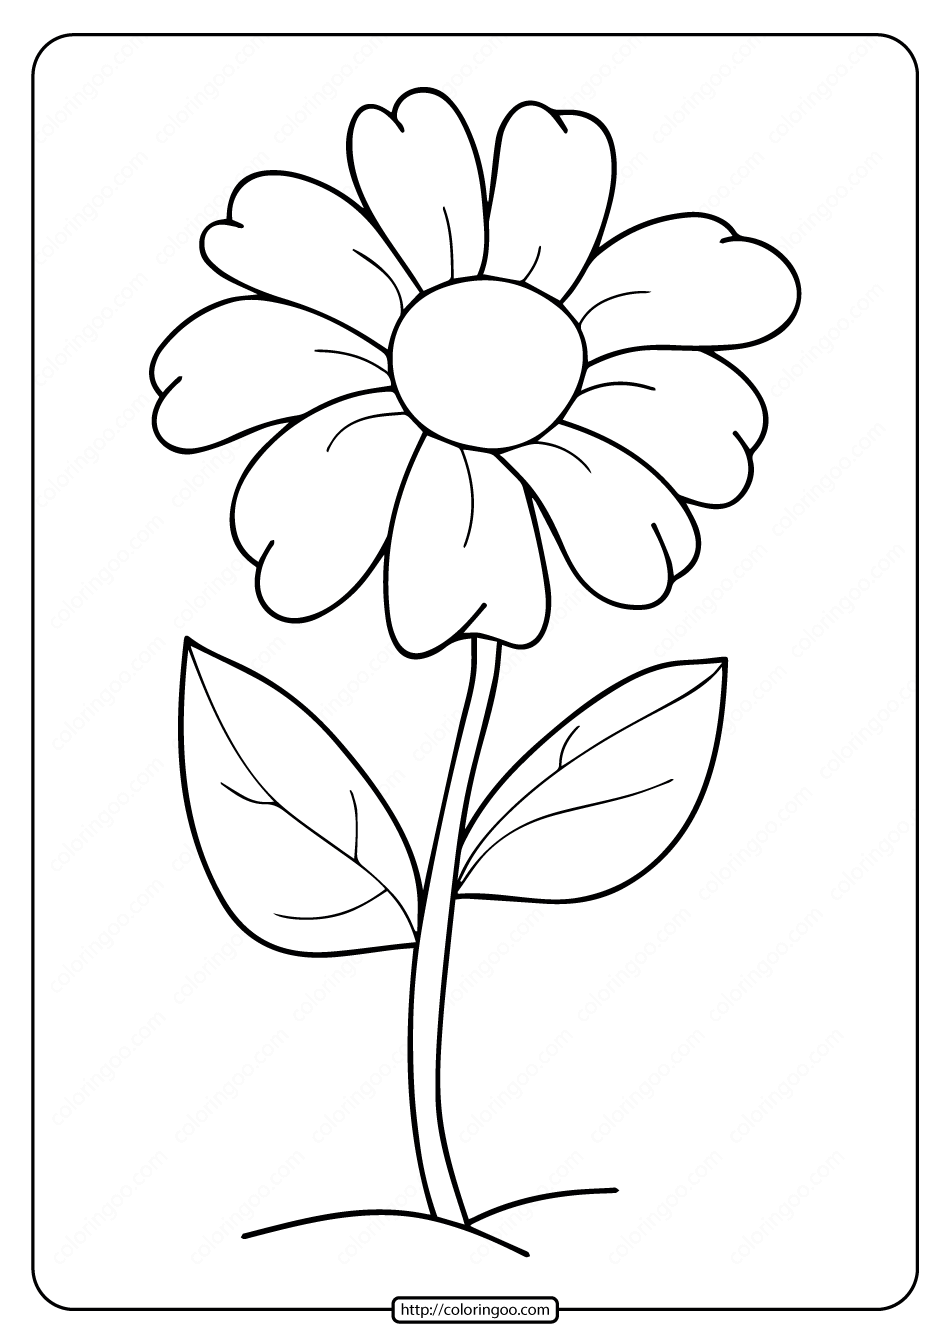 colouring flowers pictures free printable simple flower coloring pages flowers pictures colouring